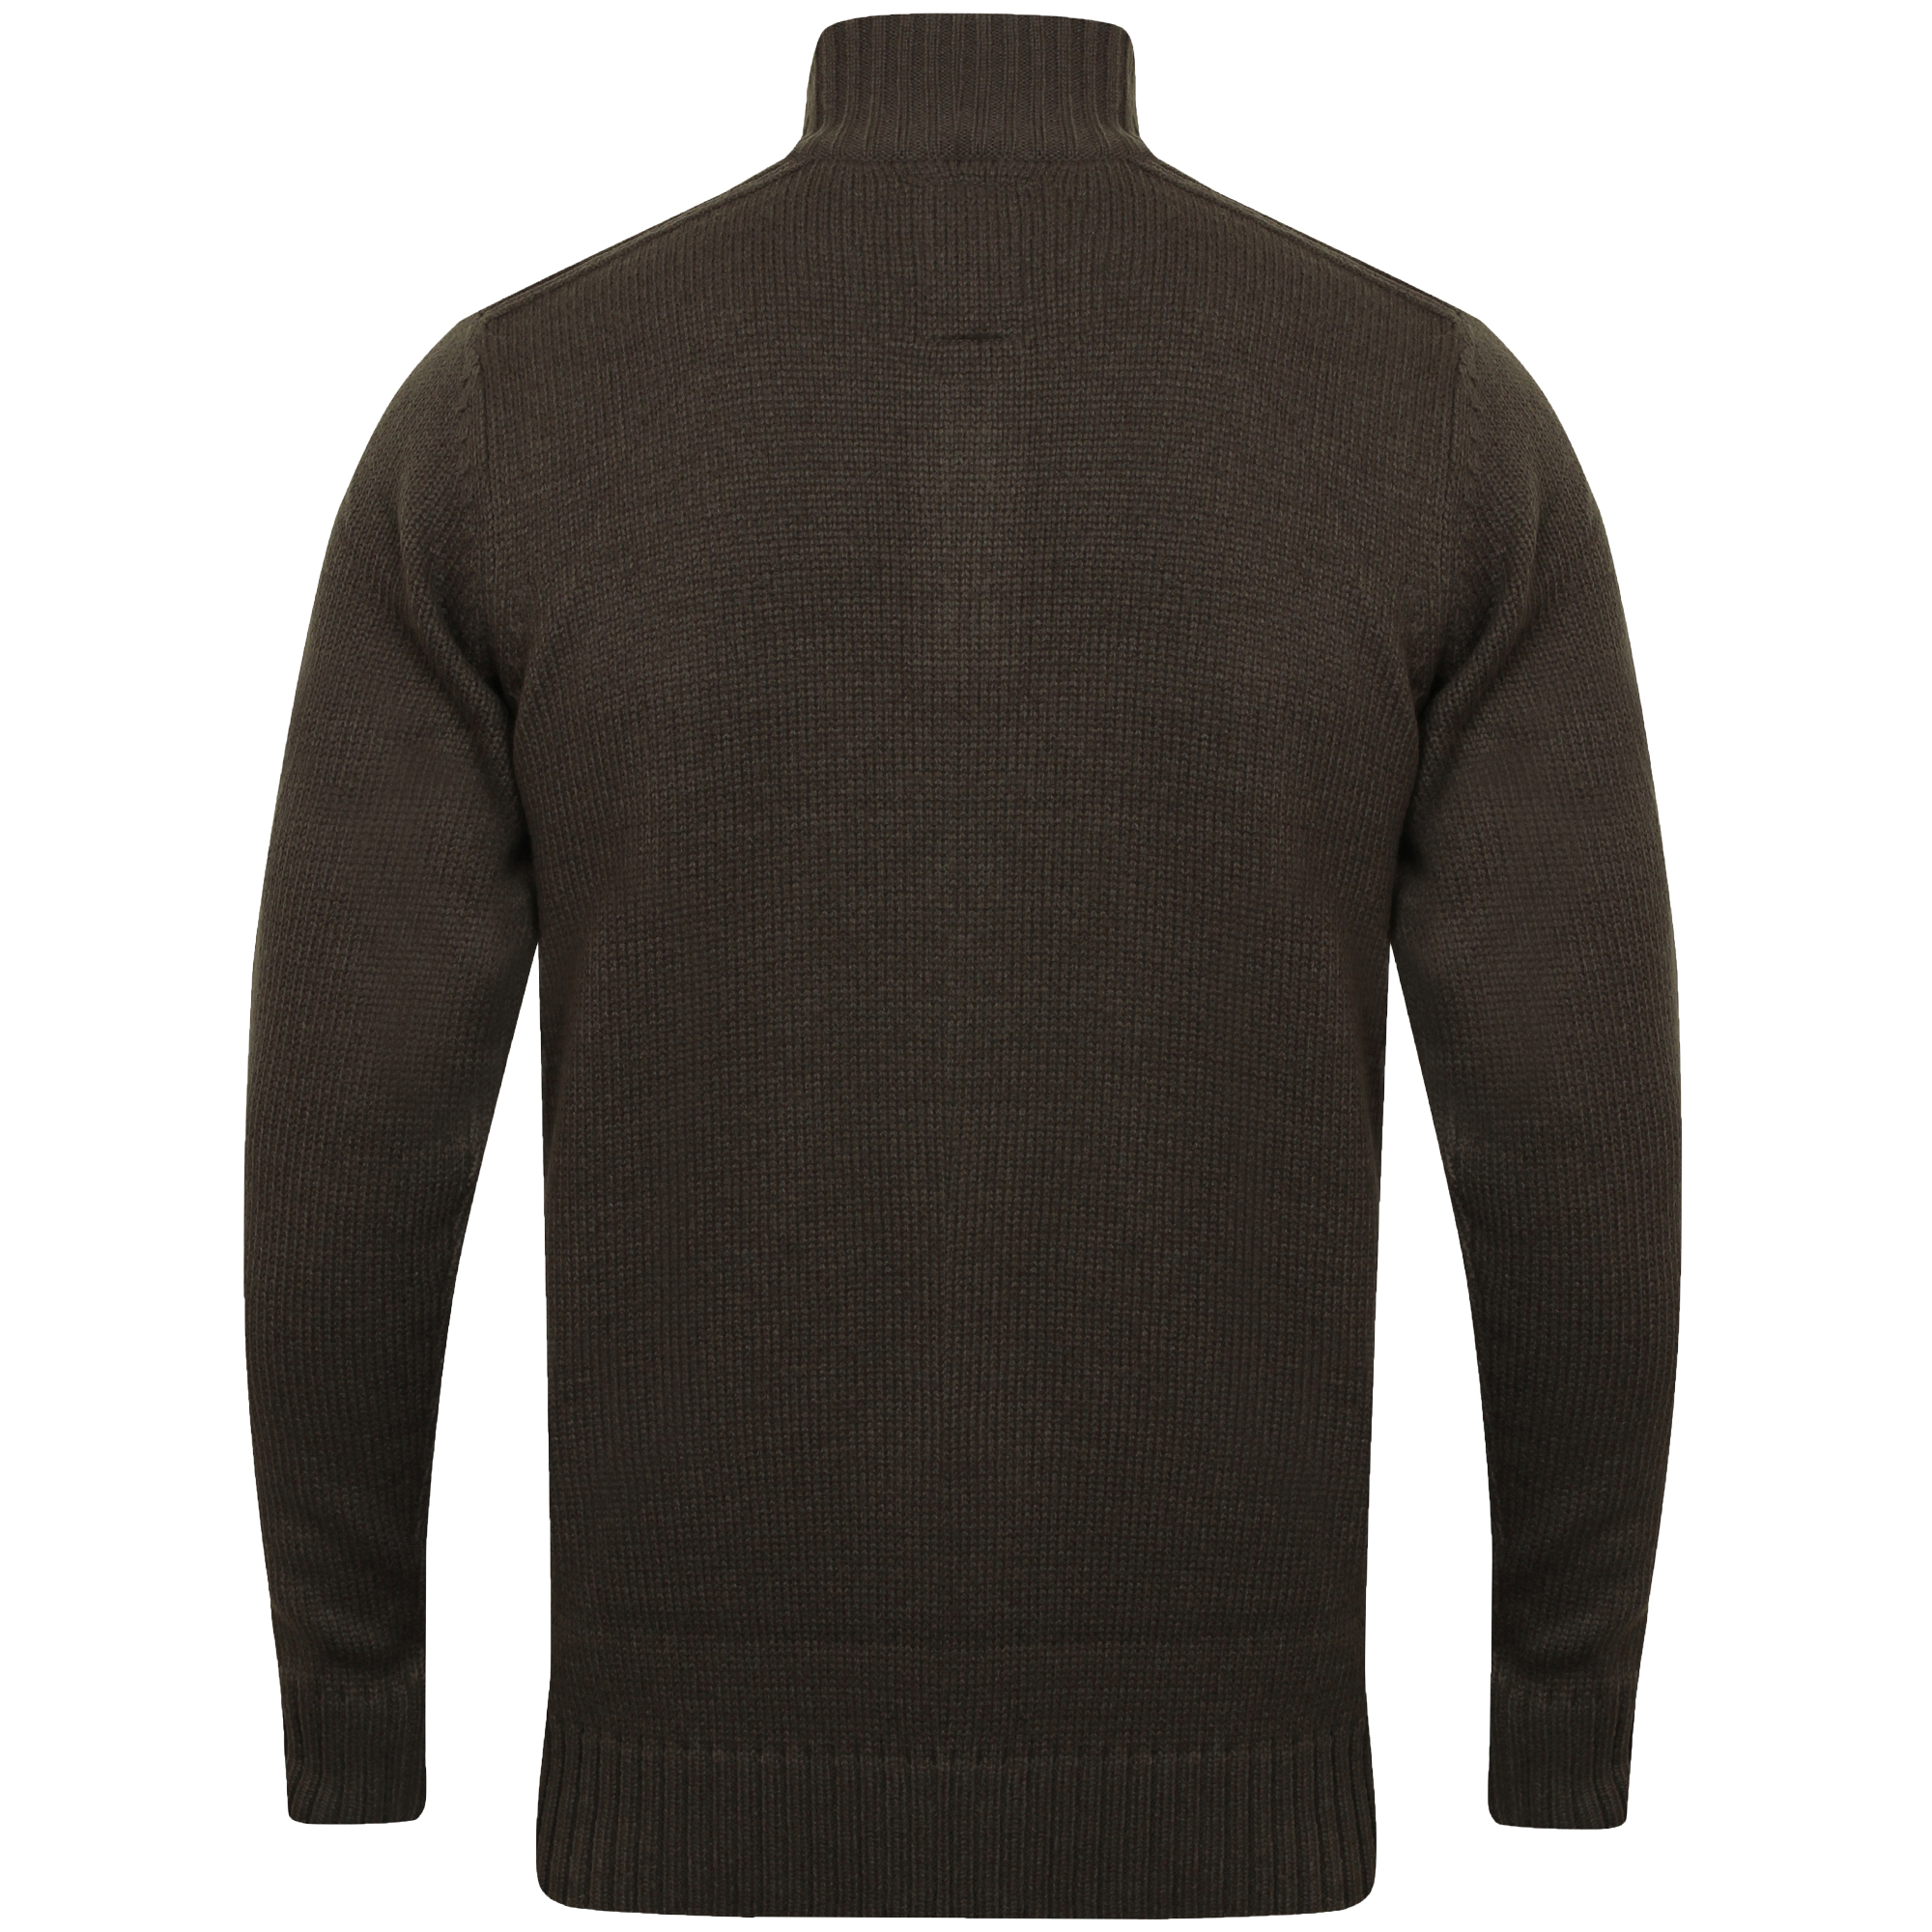 Mens-Knitted-Jumper-Kensington-Eastside-Pullover-Sweater-Top-Funnel-Neck-Winter thumbnail 3